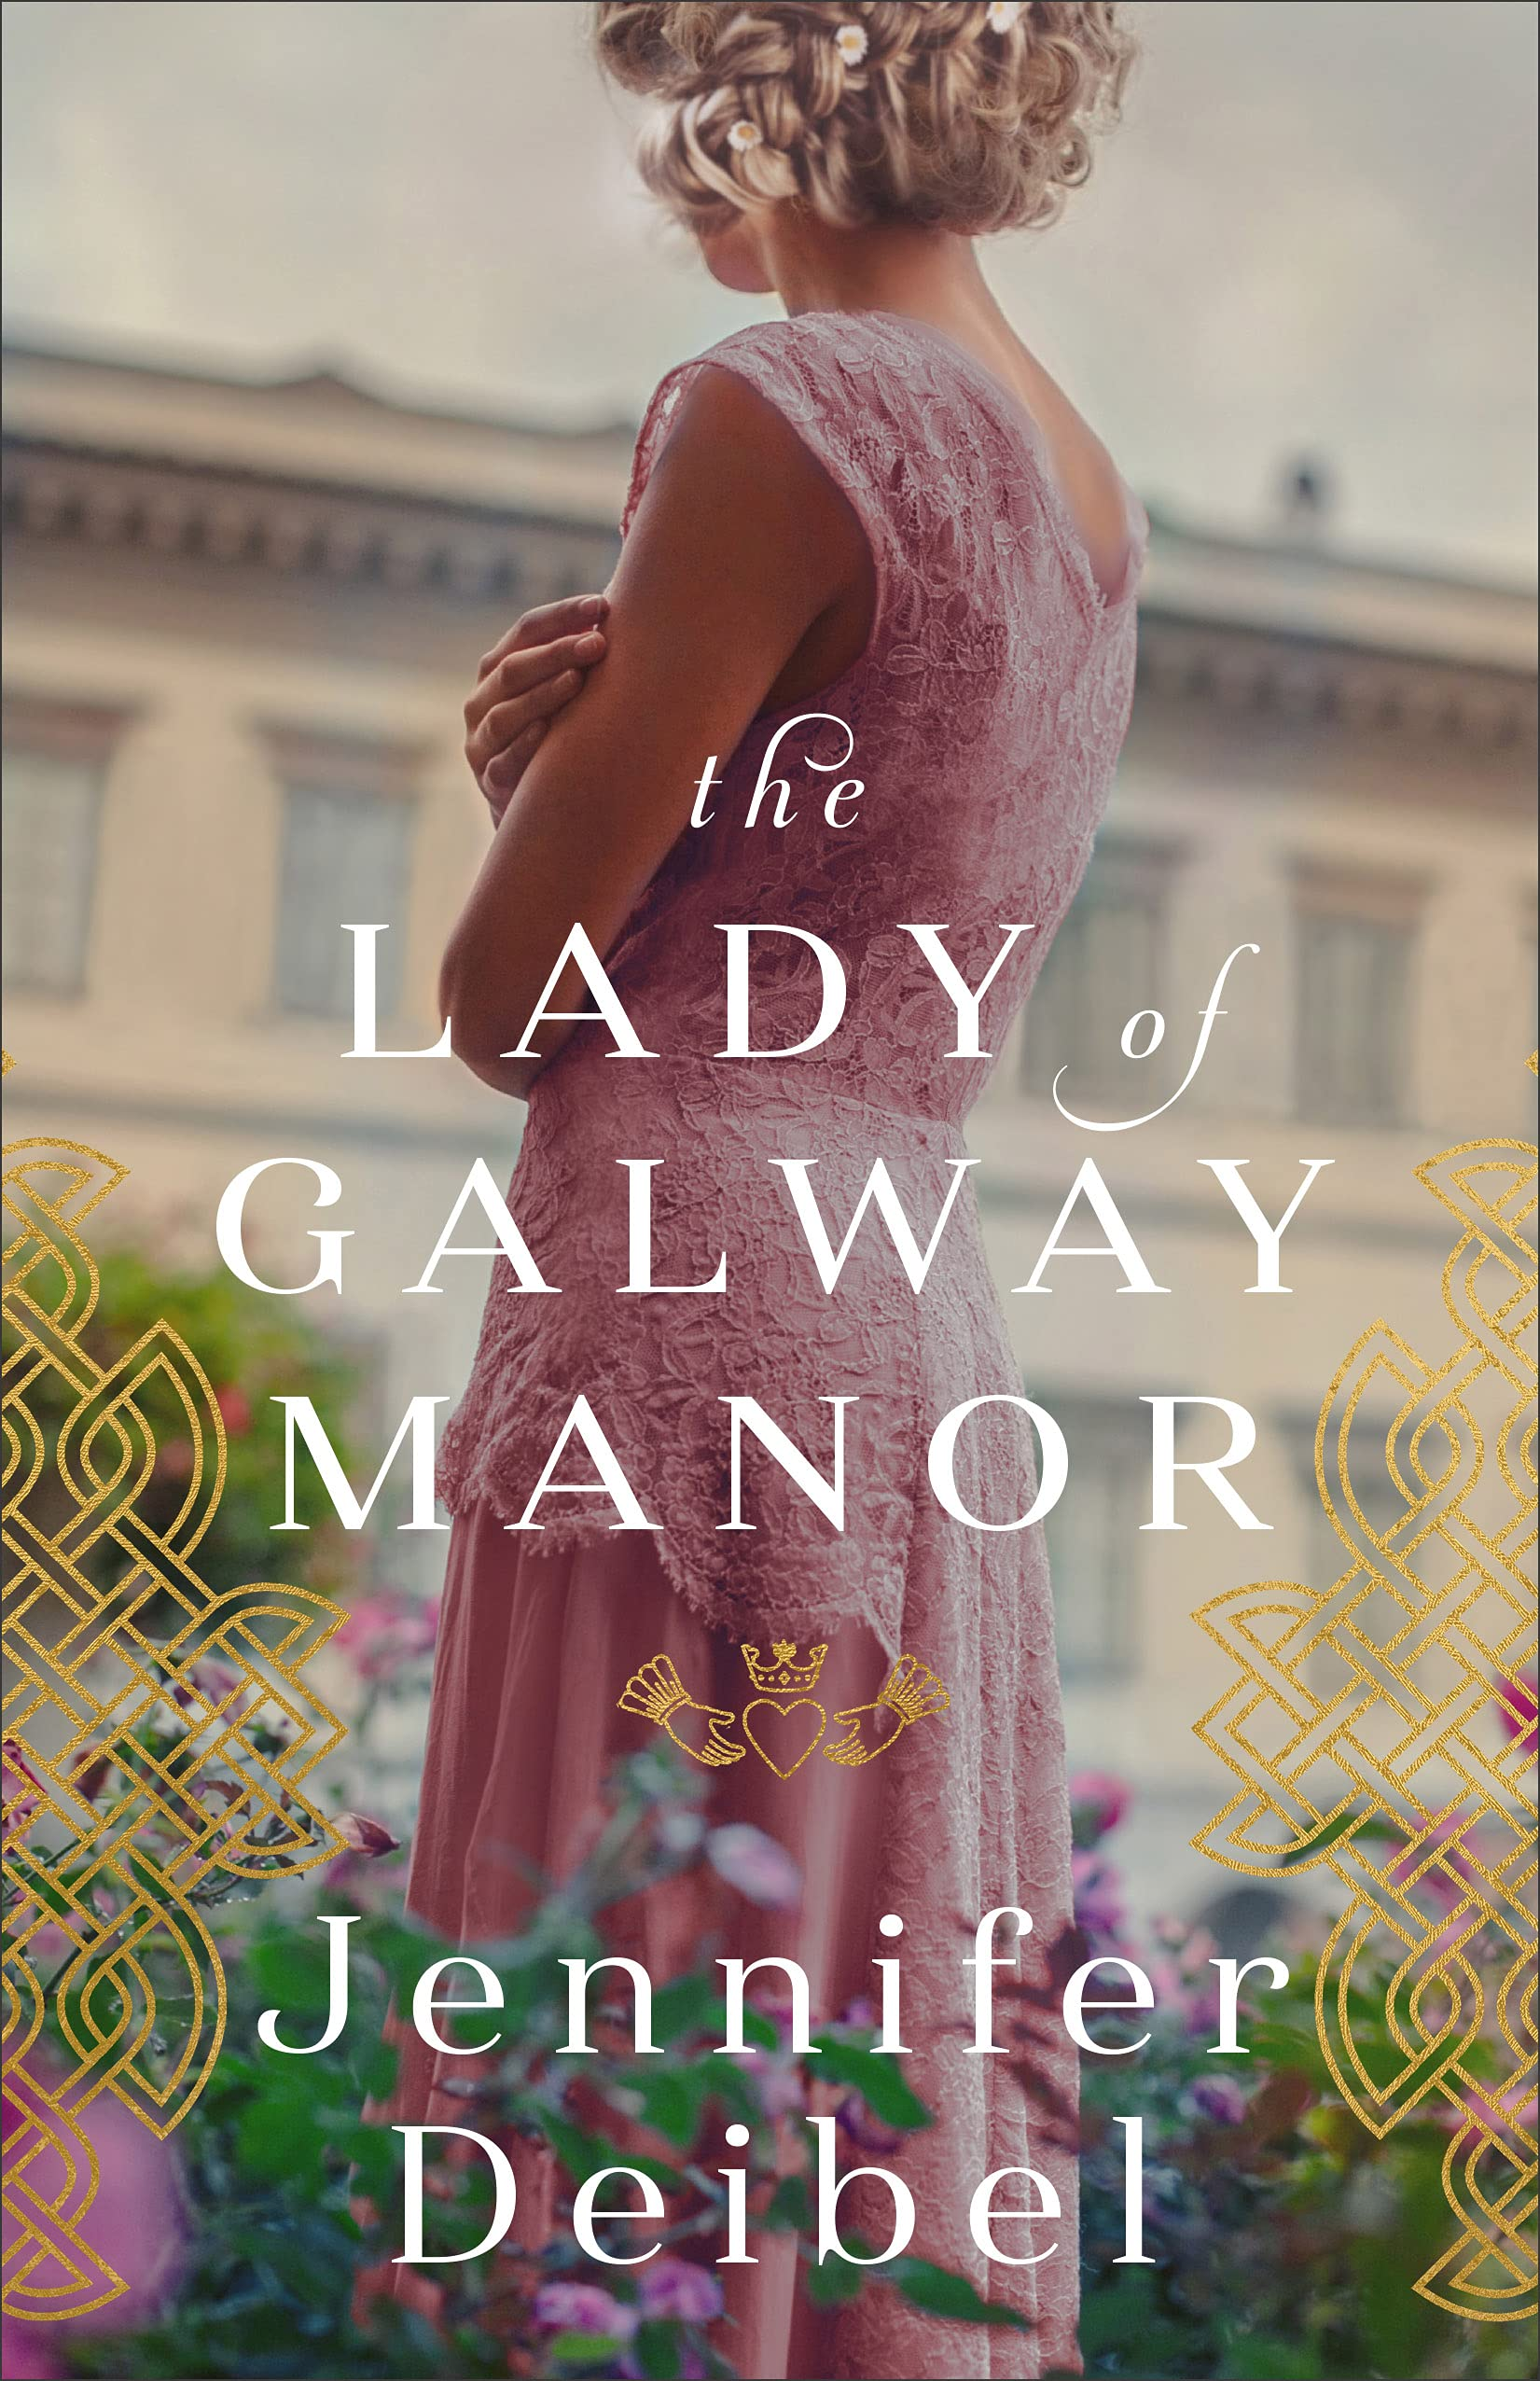 The Lady of Galway Manor